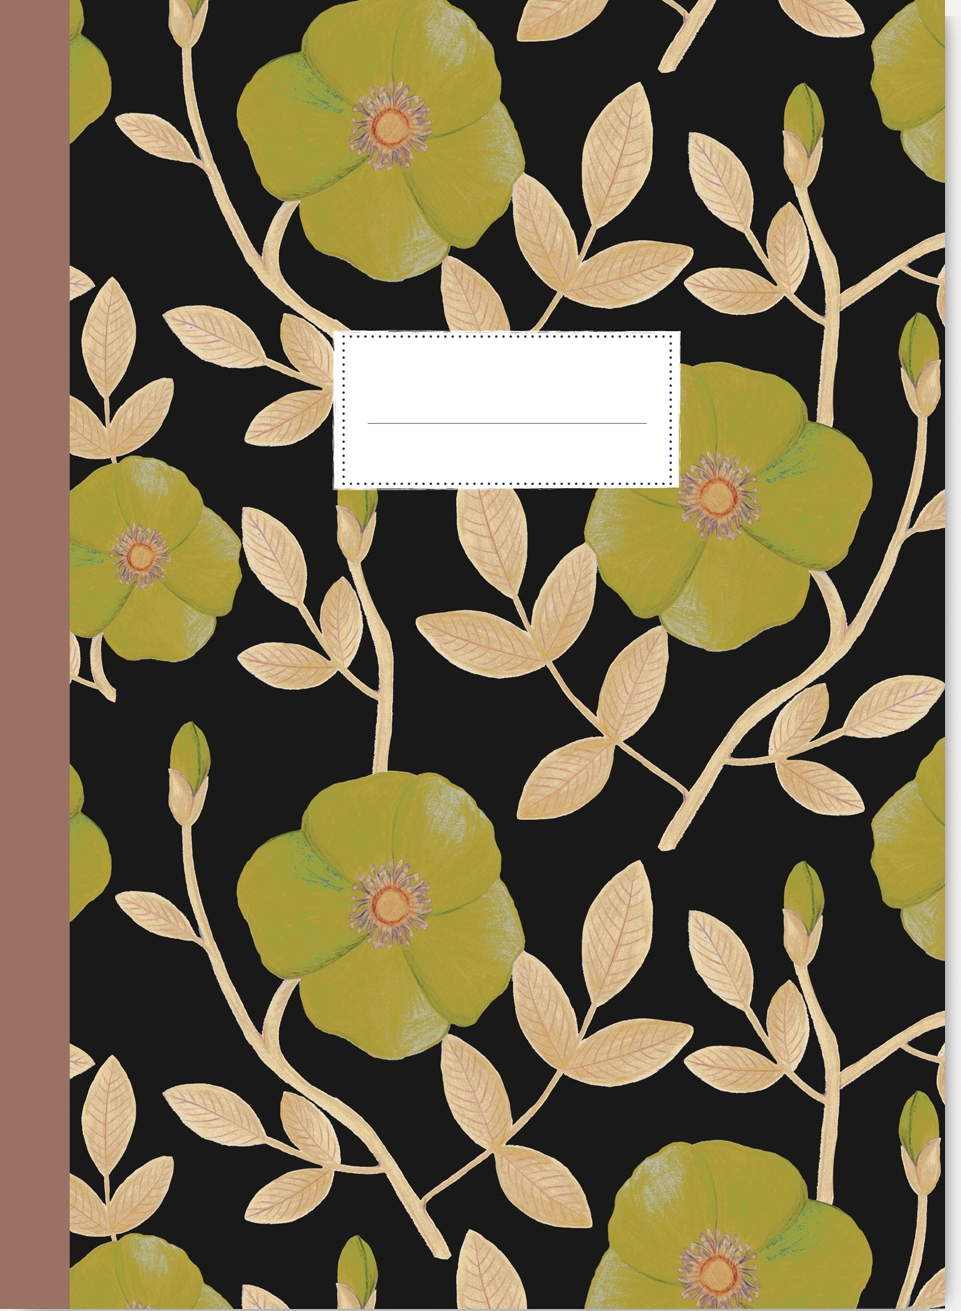 CAHIER FORMAT A5 MOTIF COQUELICOTS VERTS